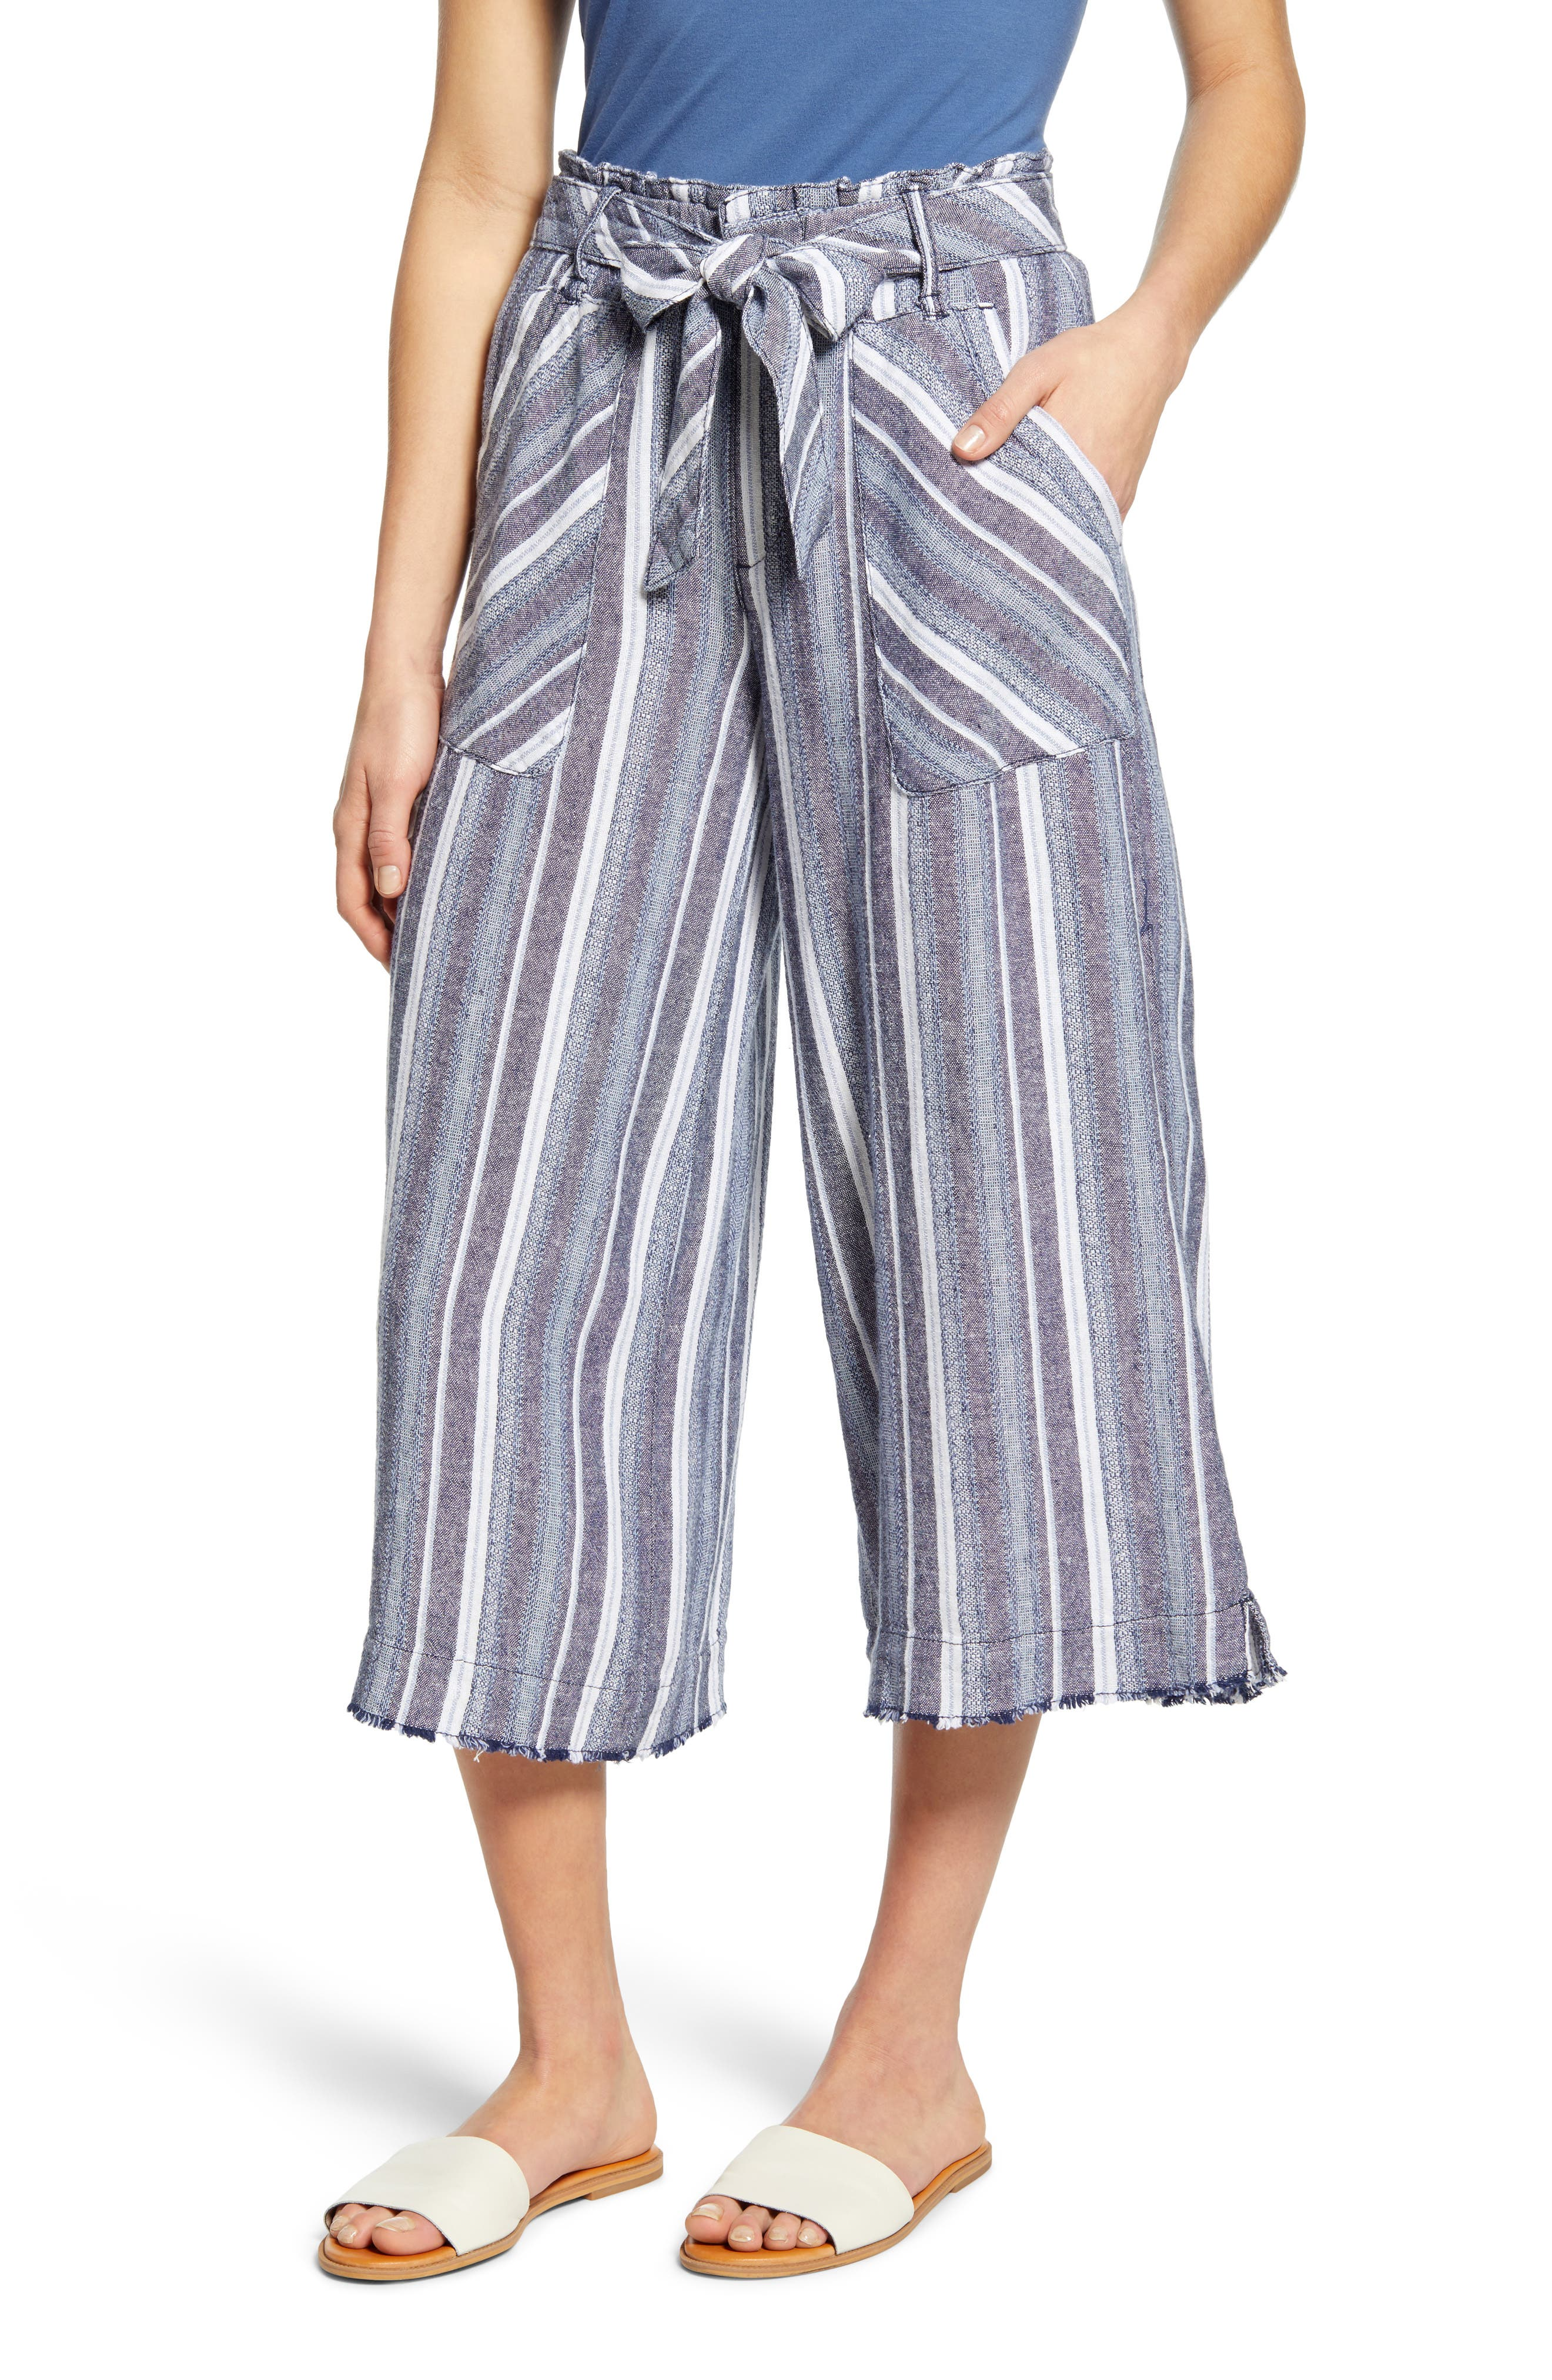 A lightweight linen blend brings a soft feel to fresh wide-leg pants styled with a paperbag waist and a cropped silhouette. Style Name: Wit & Wisdom Paperbag Waist Crop Wide Leg Pants (Nordstrom Exclusive). Style Number: 6012652. Available in stores.